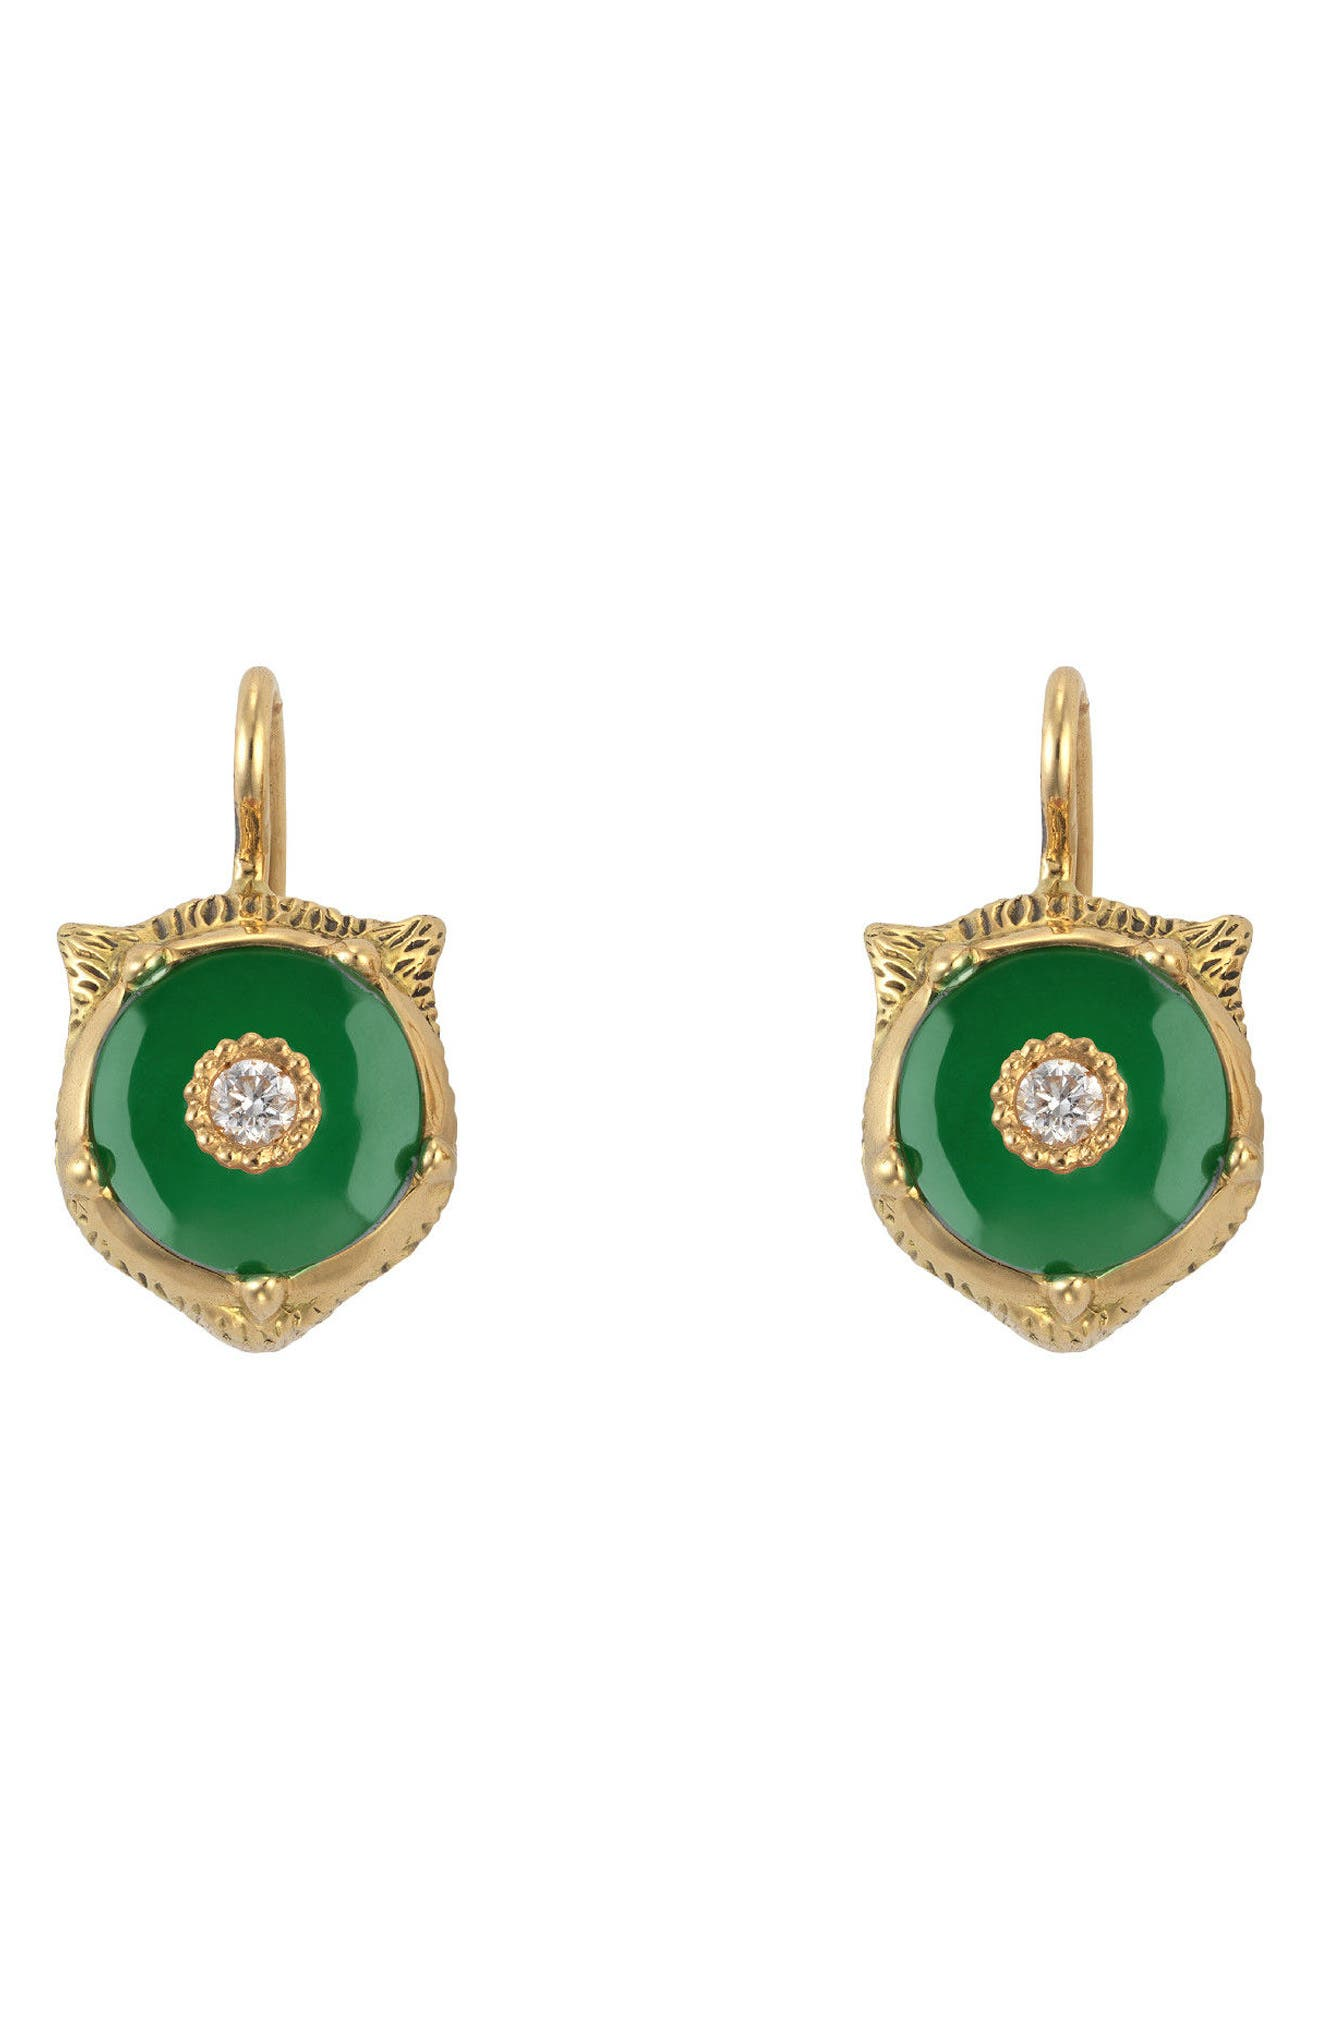 Feline Head Earrings,                             Main thumbnail 1, color,                             YELLOW GOLD/ GREEN JADE